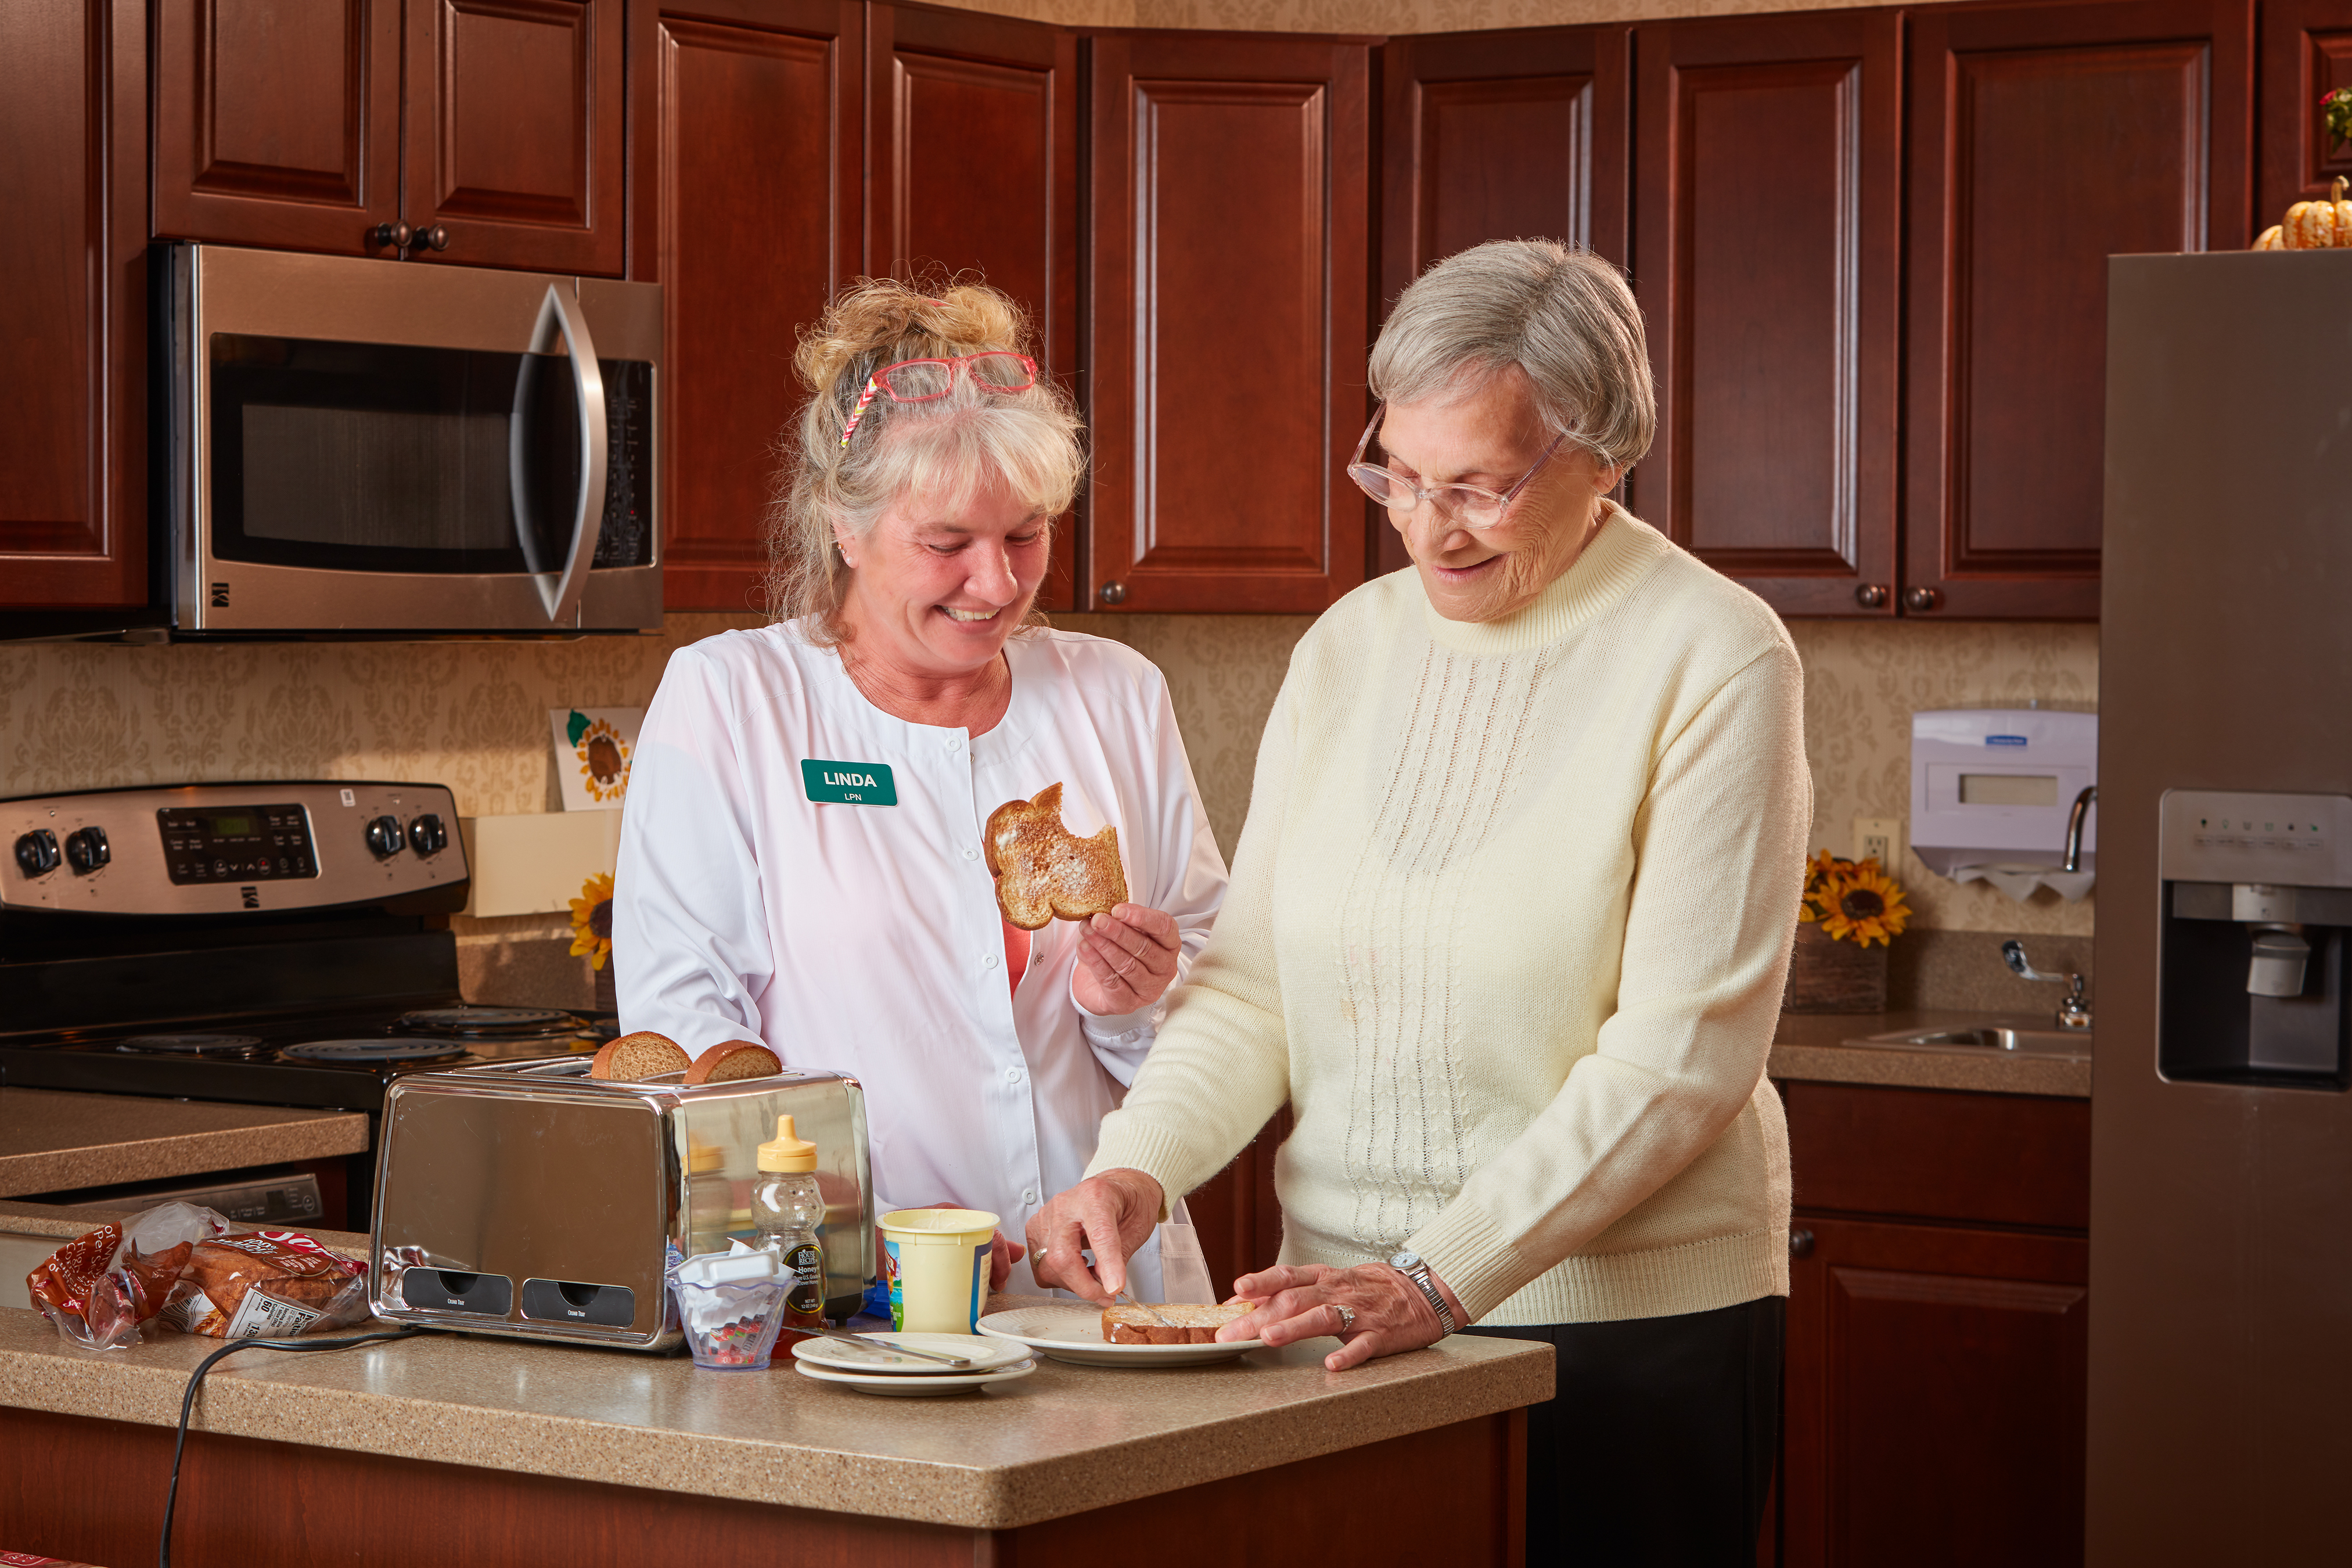 MCMCFC Assisted Living Services